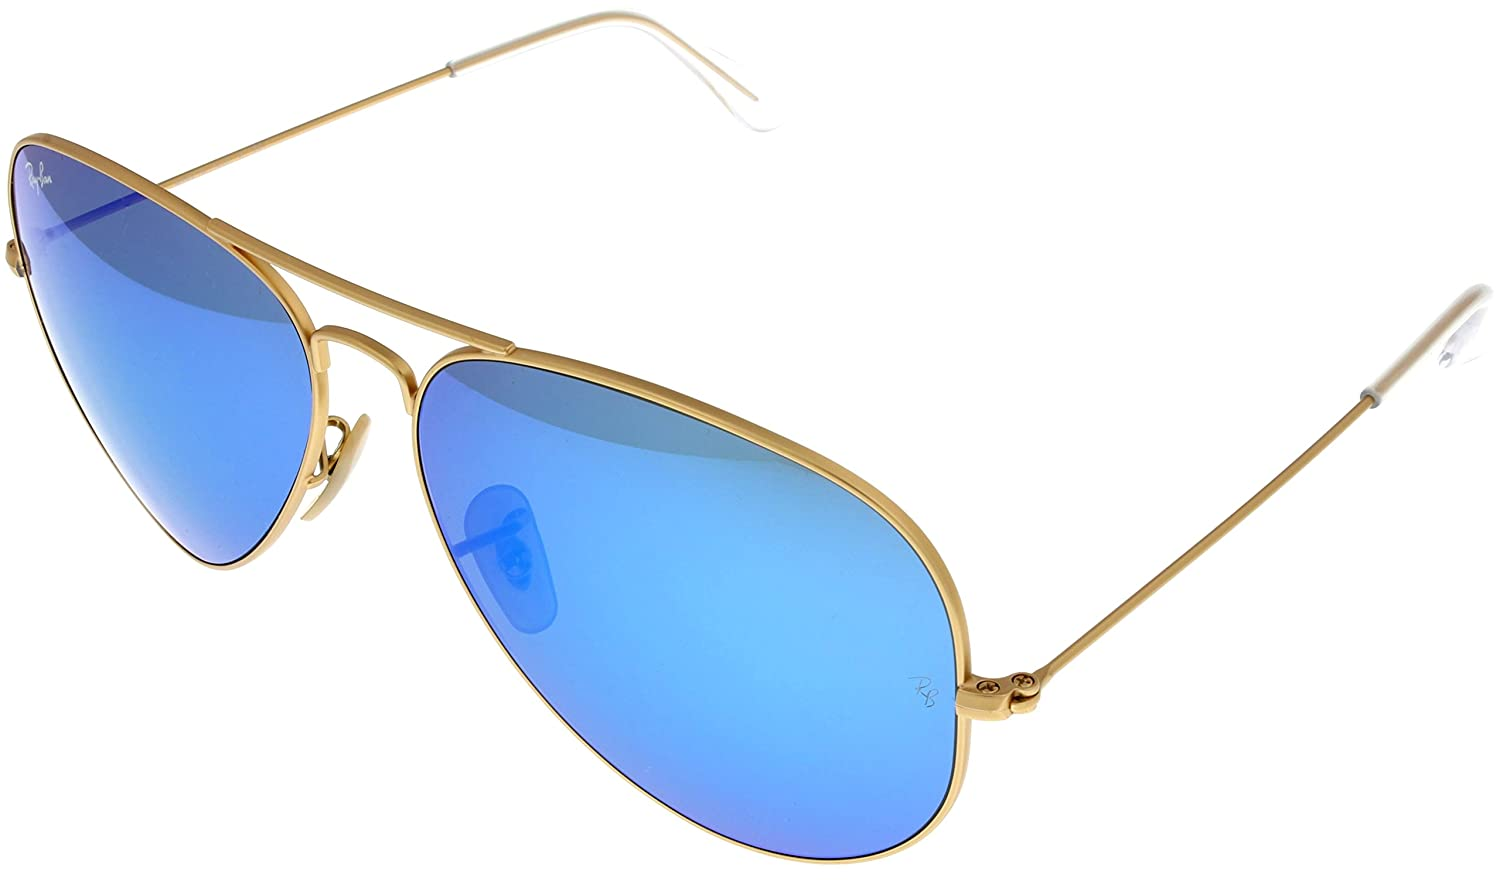 0600de401f Amazon.com  Ray Ban Sunglasses Aviator Gold  Blue Mirrored Lens Unisex  RB3025 112 17 62  Clothing